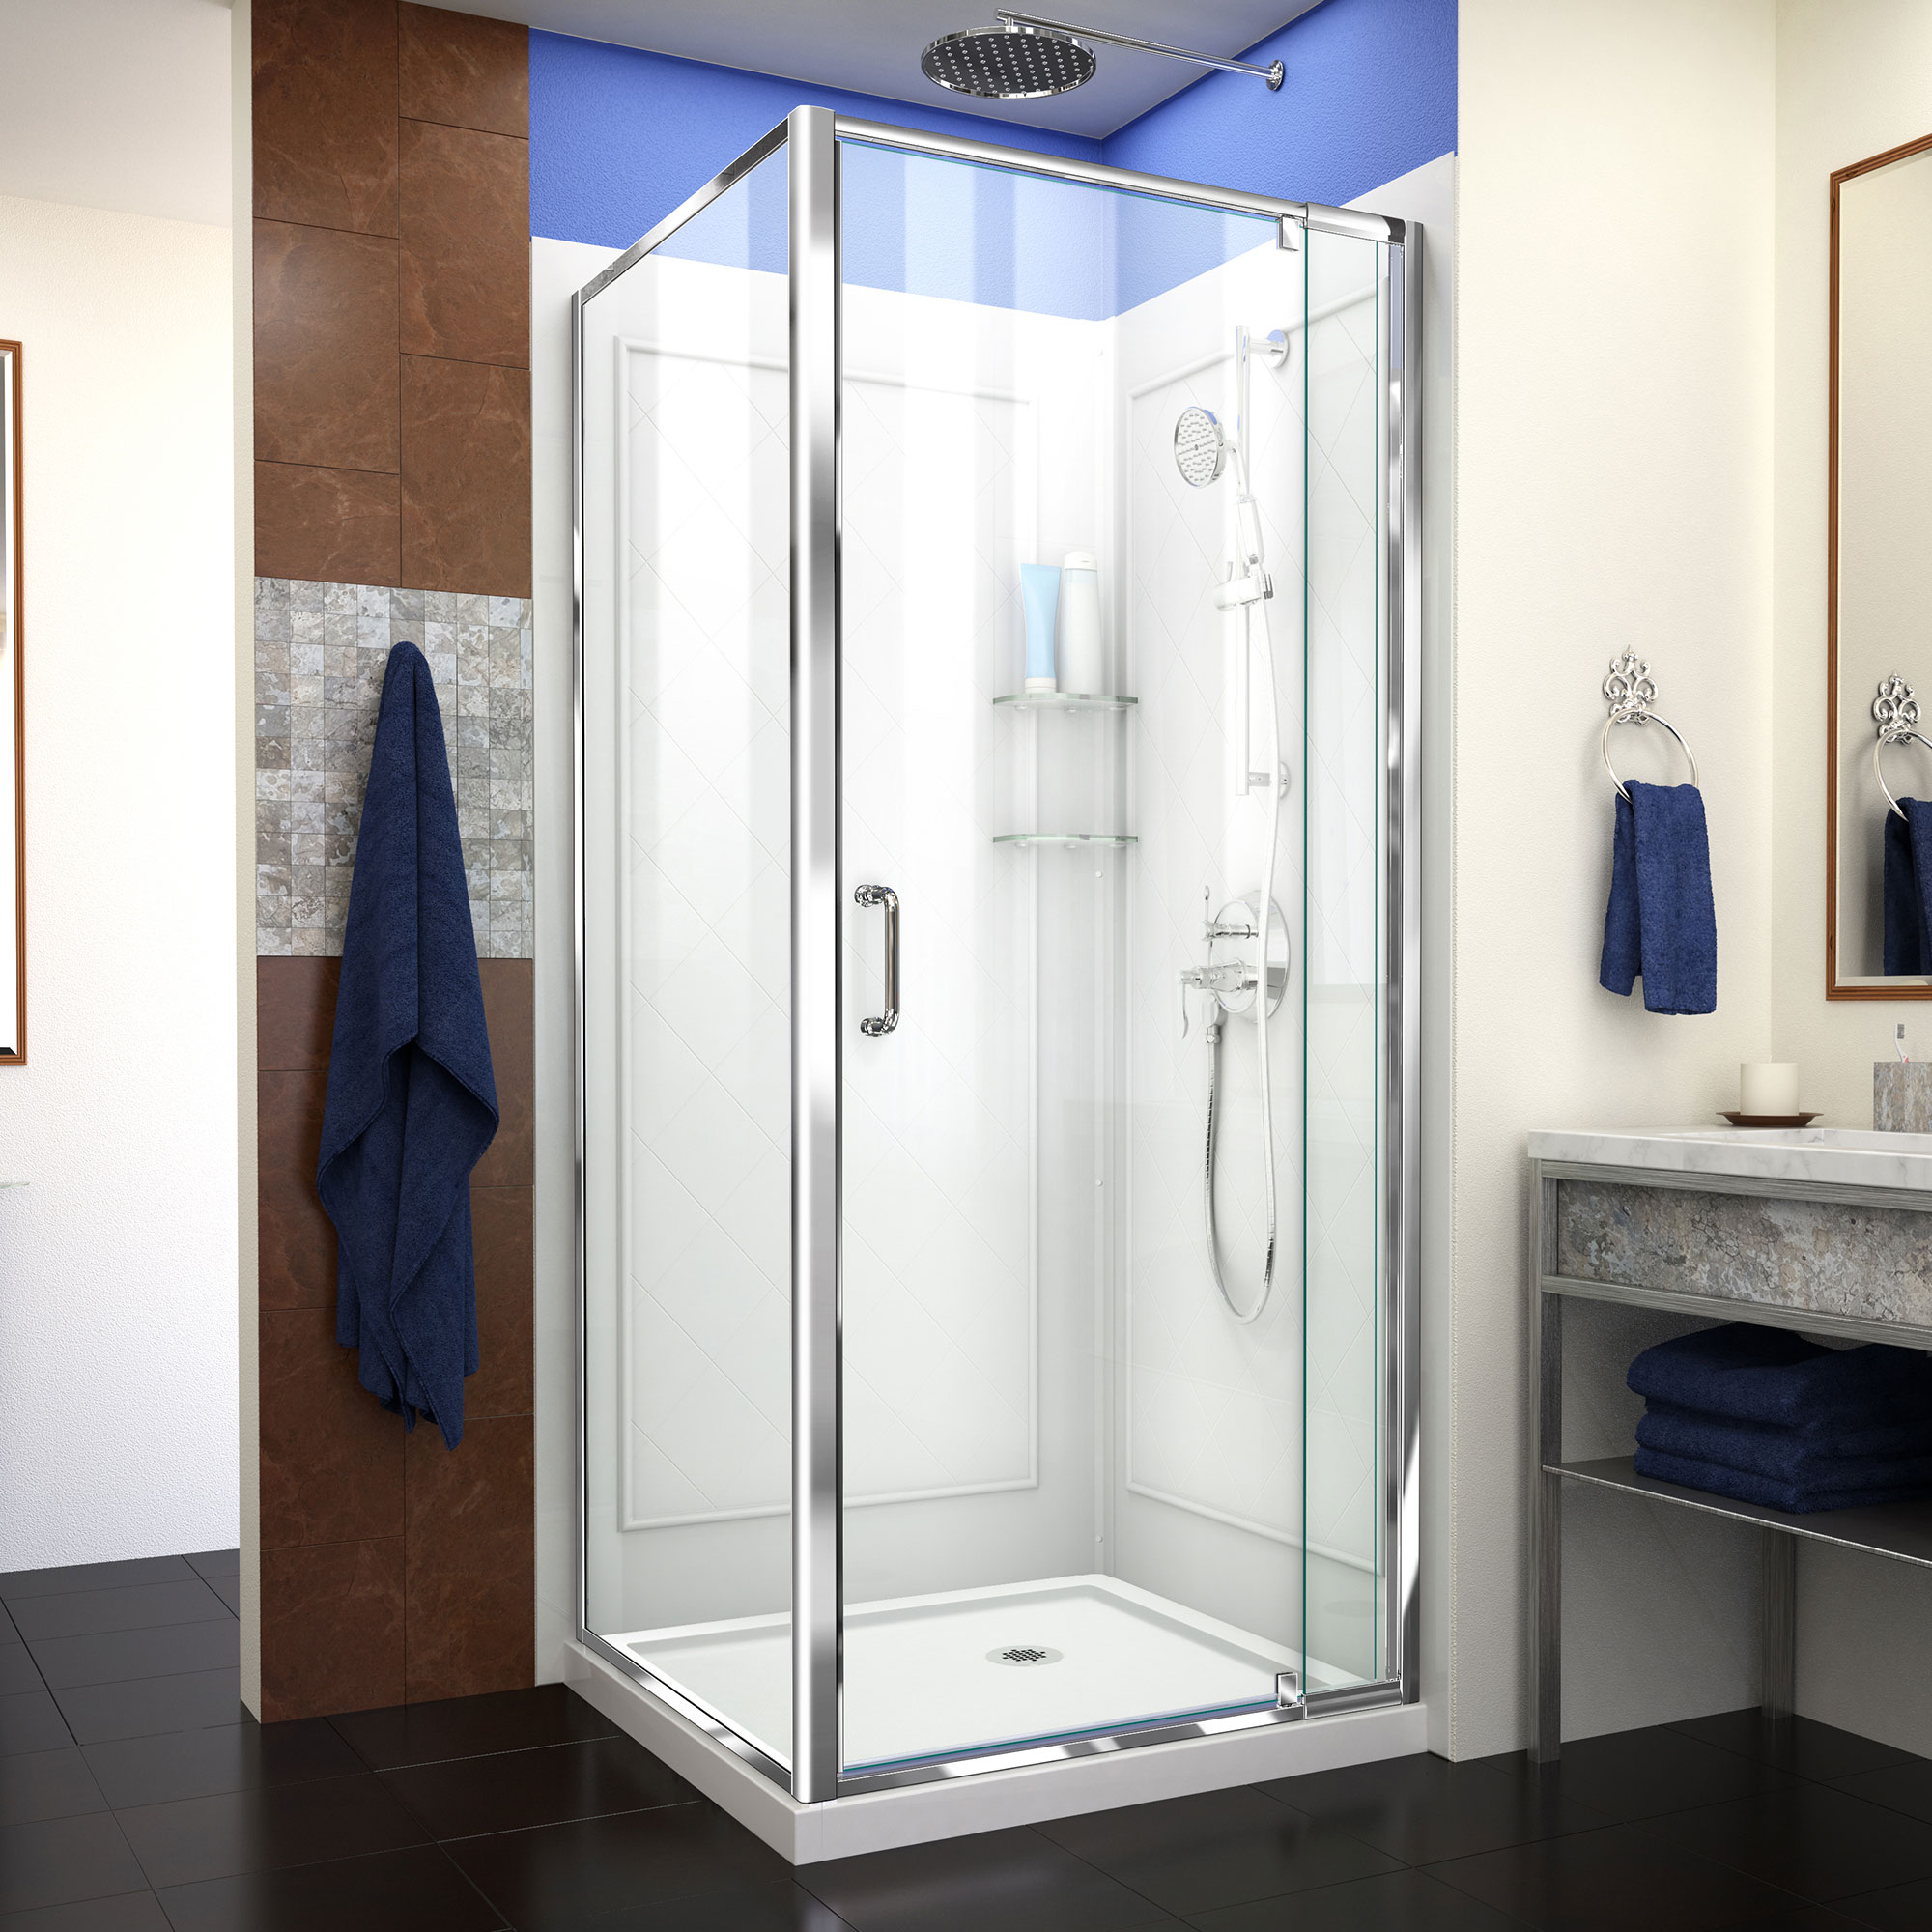 DreamLine Flex DL-6716-01CL Pivot Shower Enclosure in Chrome with White Base and Backwalls